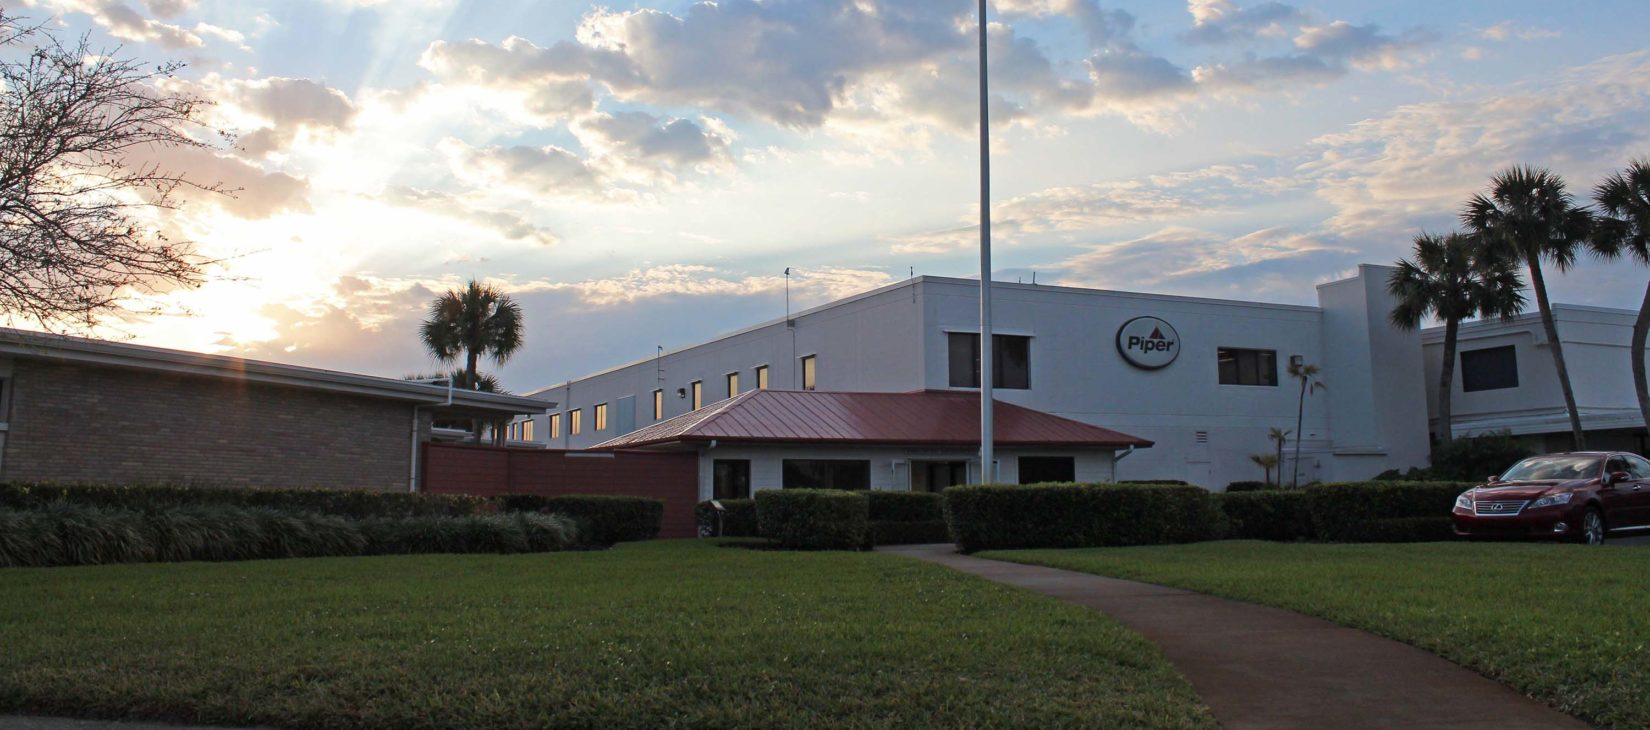 Piper Aircraft Headquarters